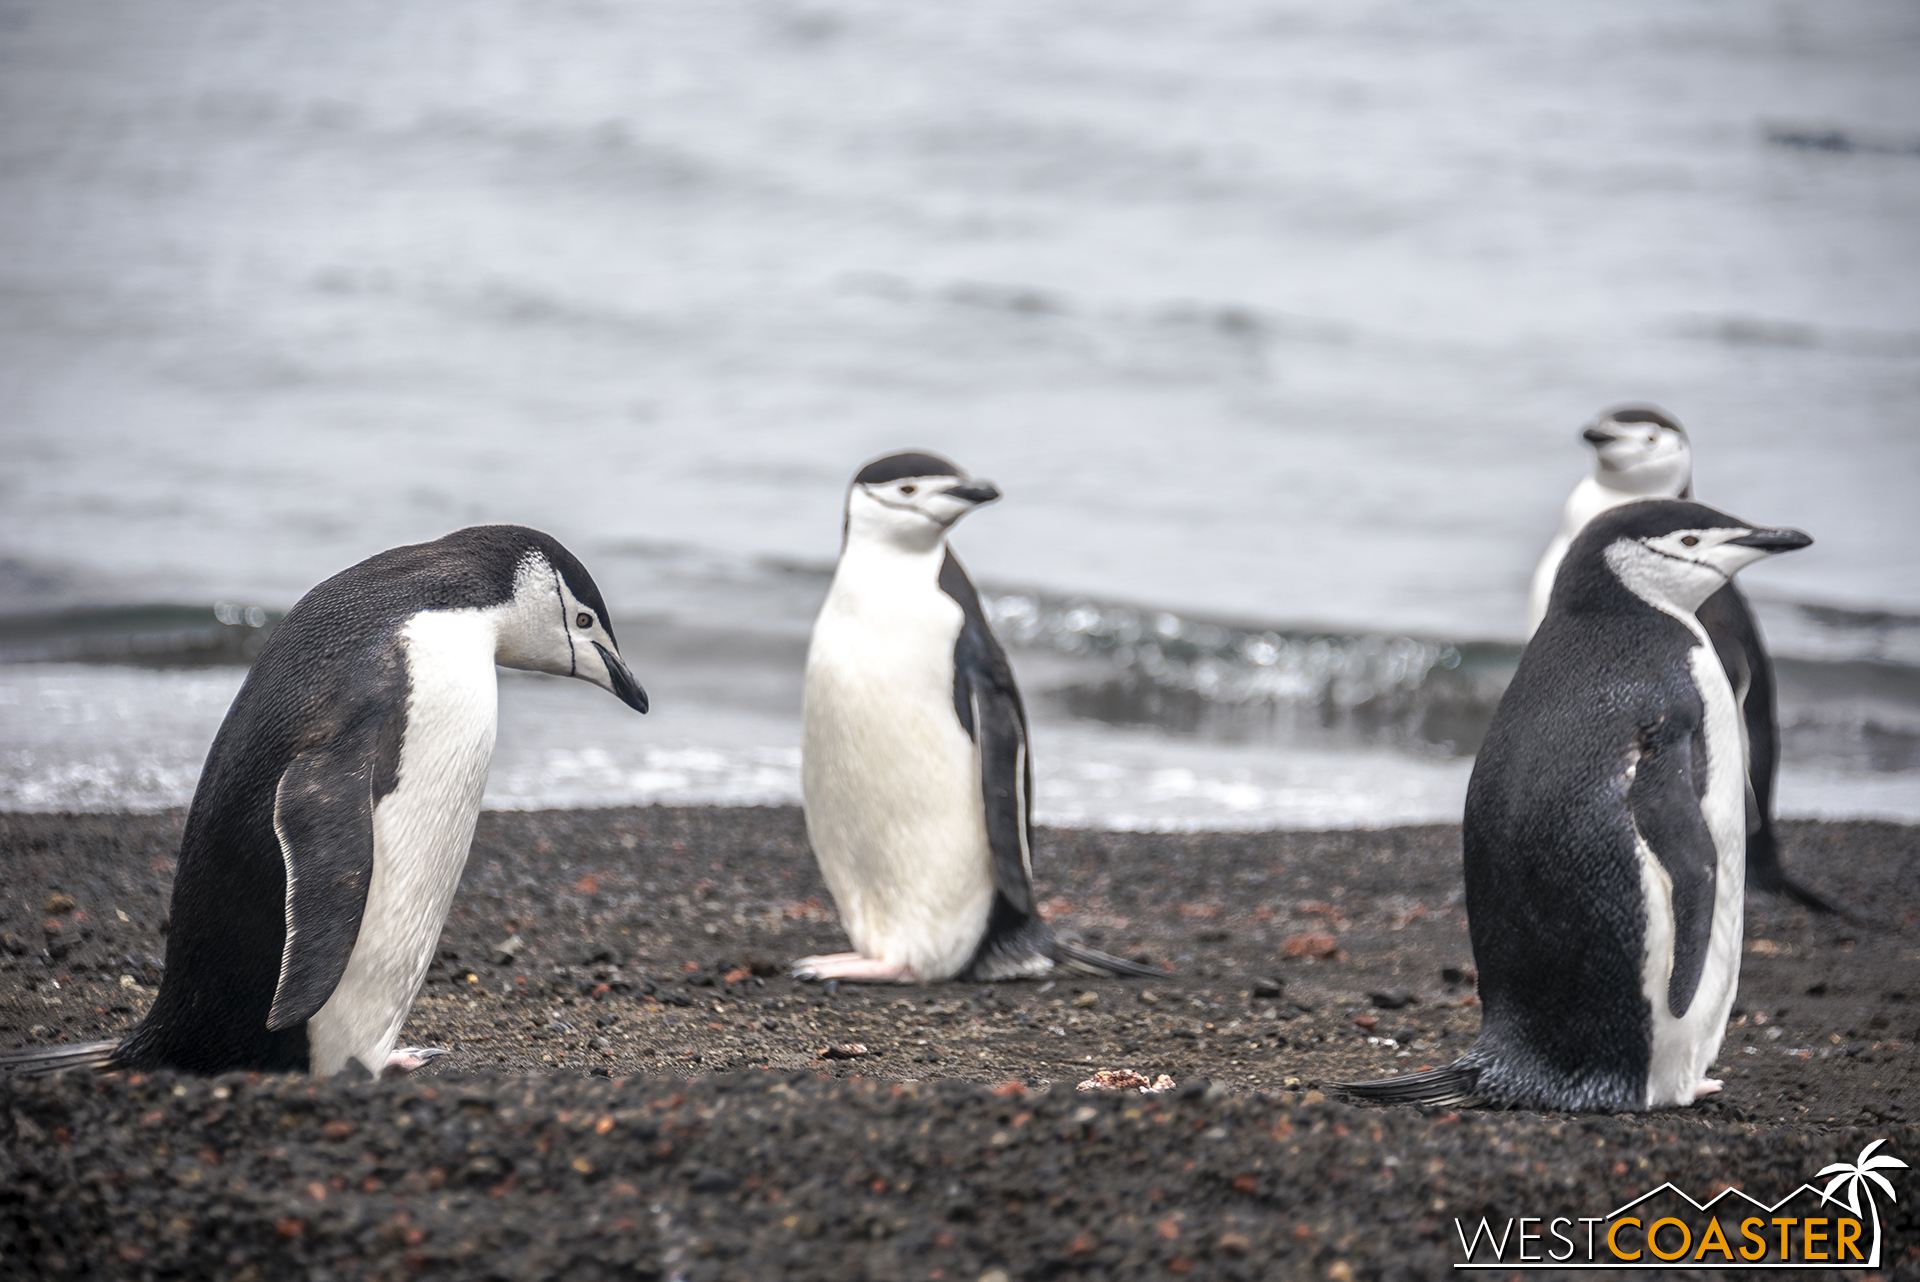 Chinstrap penguins are characterized by the thin black band that goes under their beaks. Like a chinstrap.